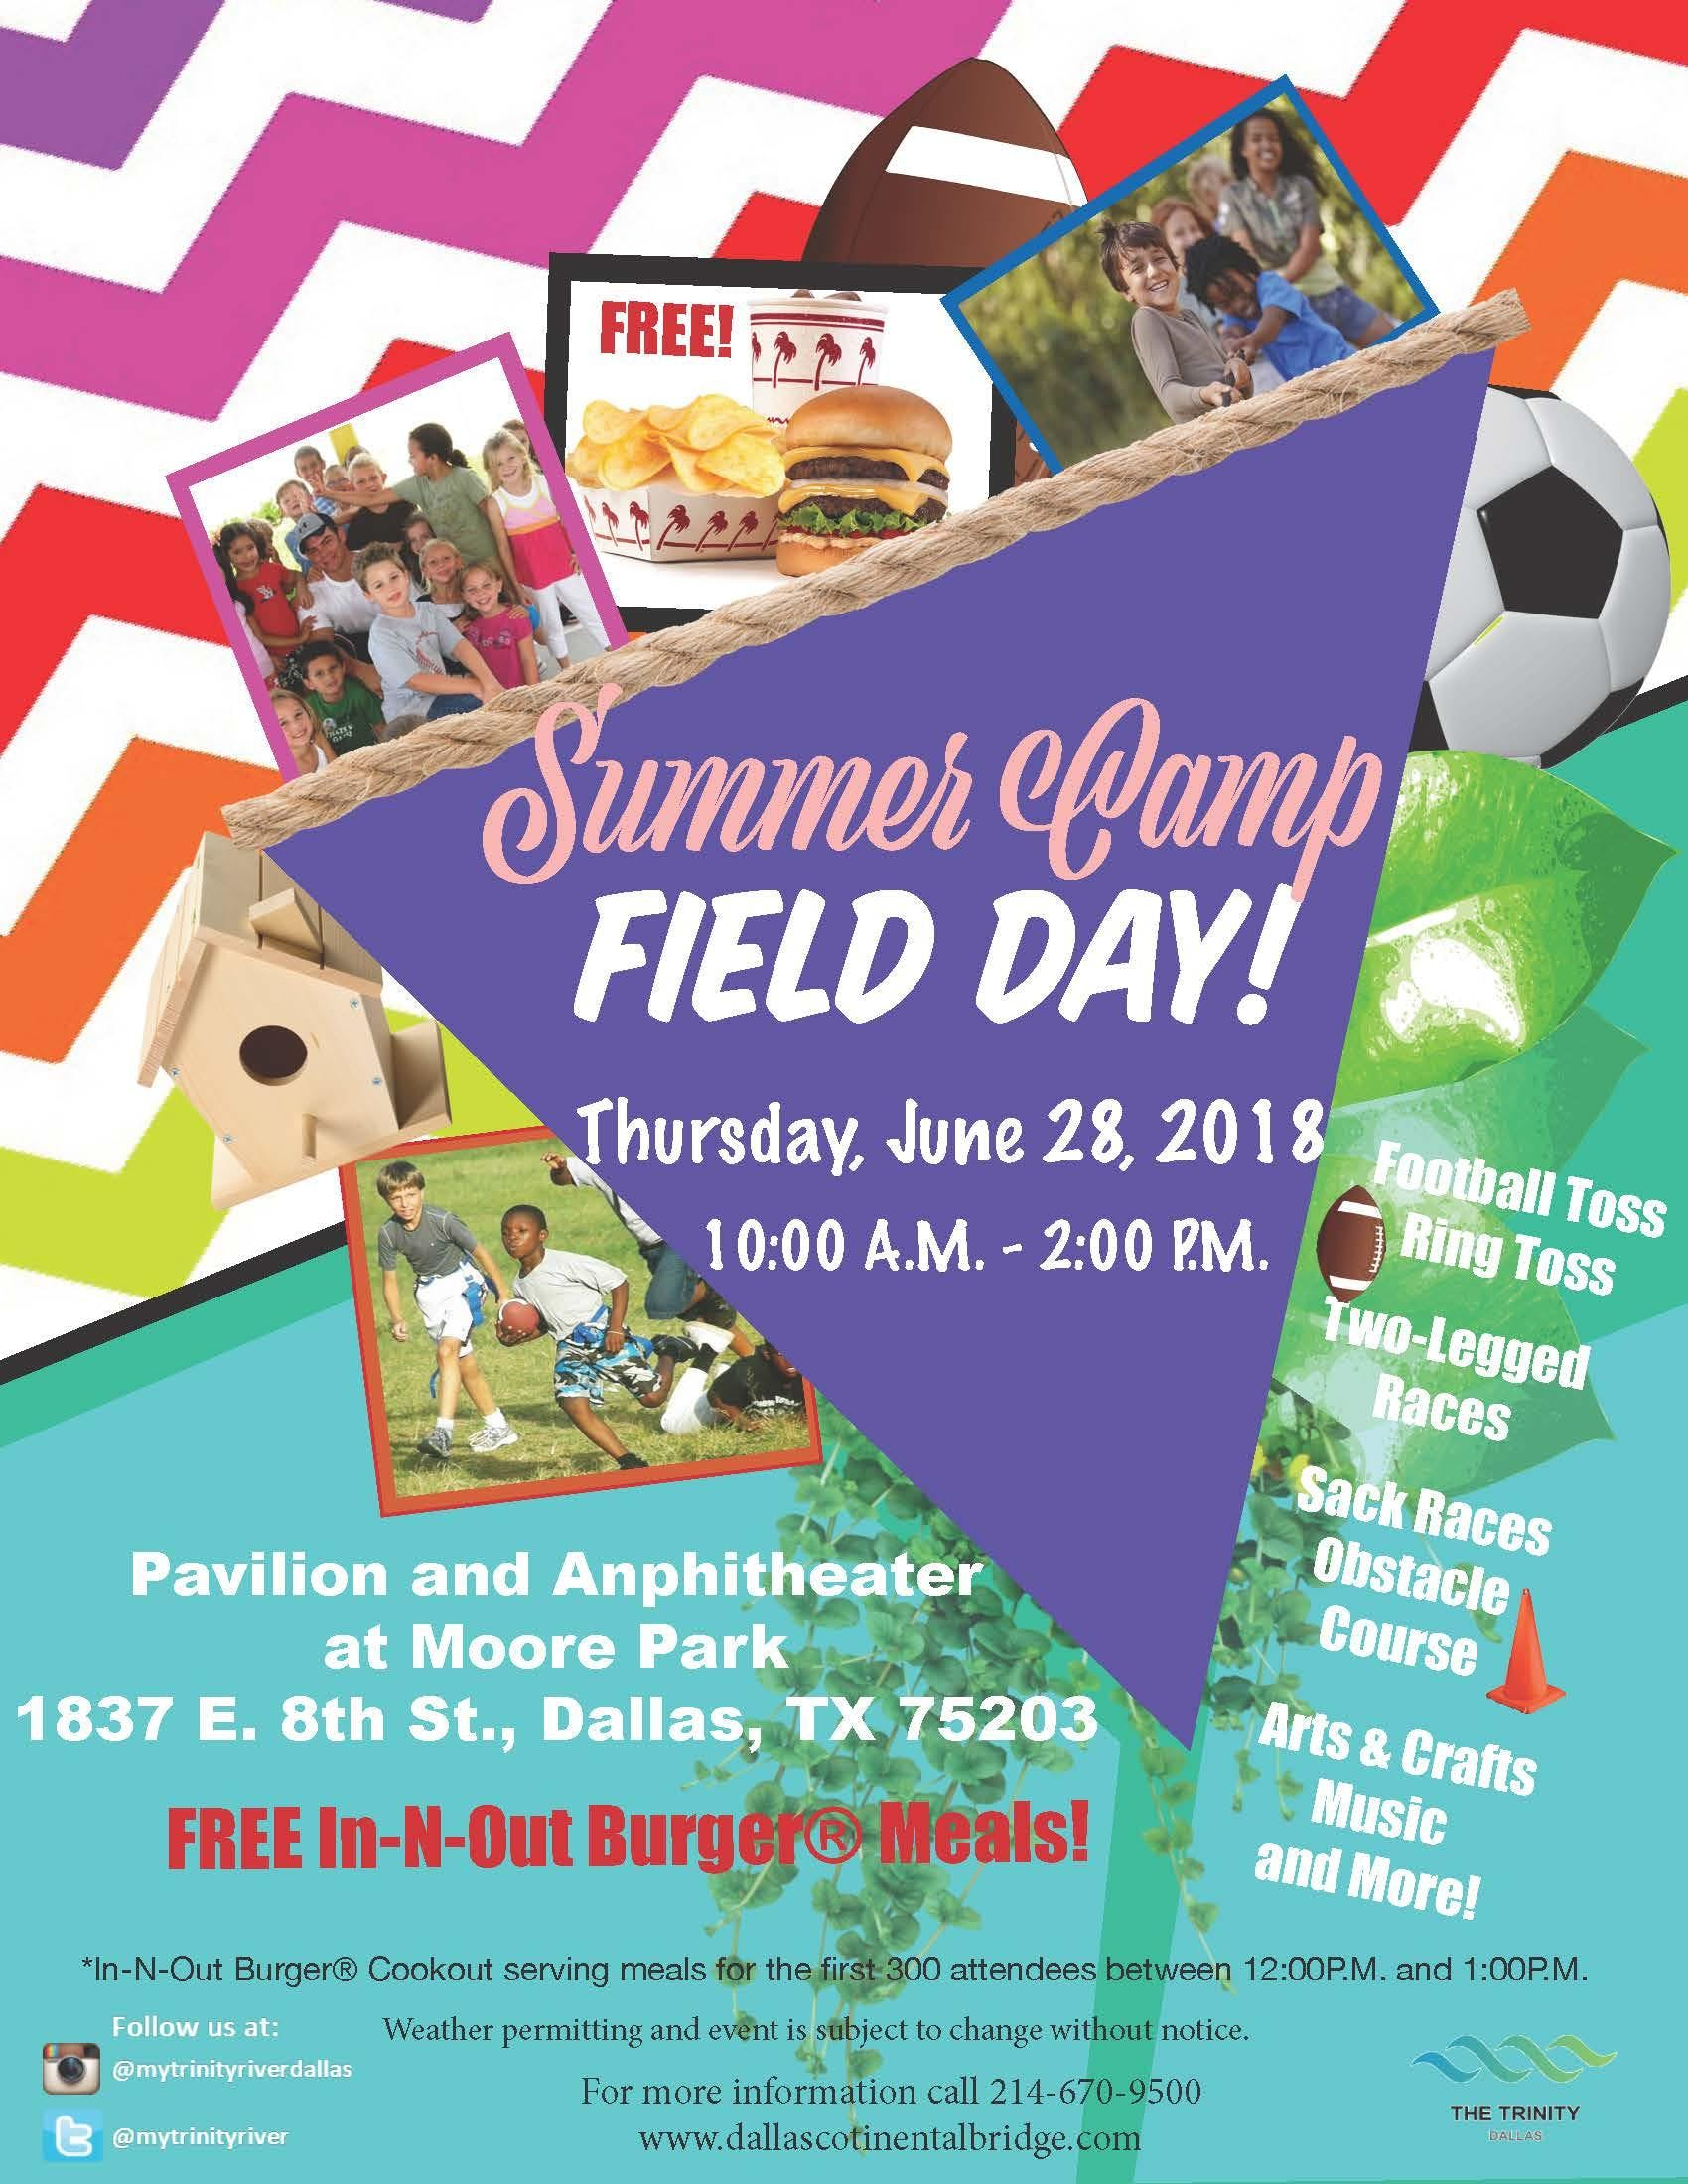 Summer Camp Field Day with Free In-N-Out Burger